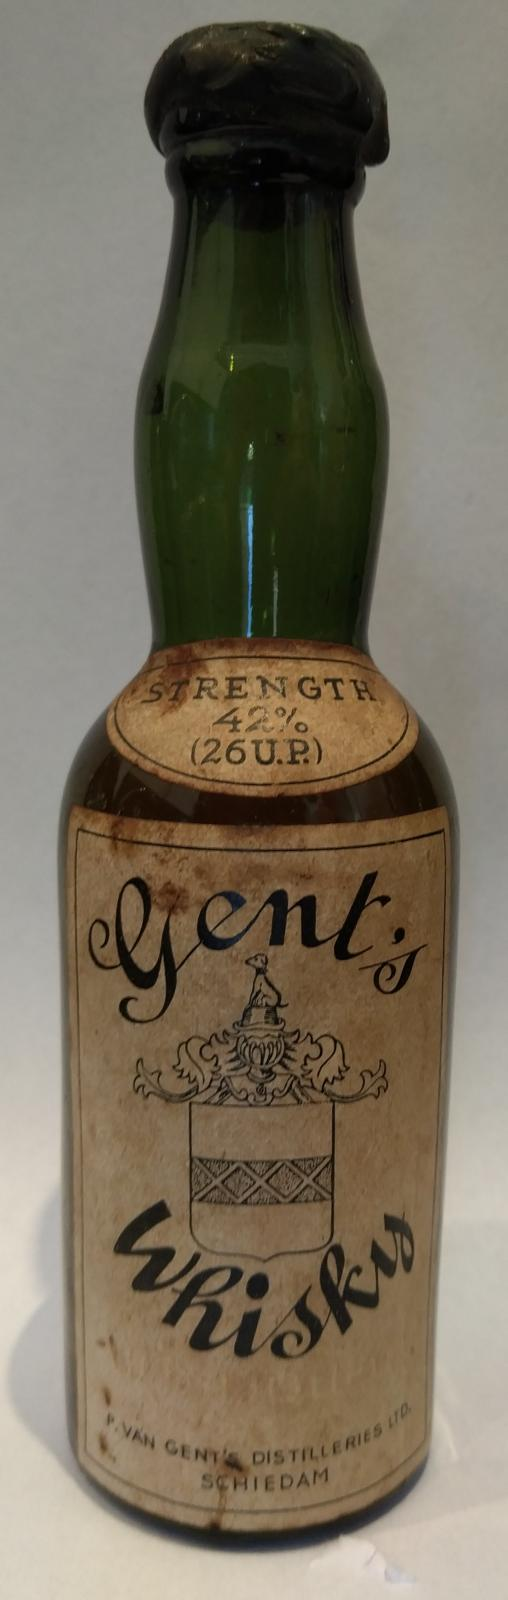 Gent's Whisky NAS